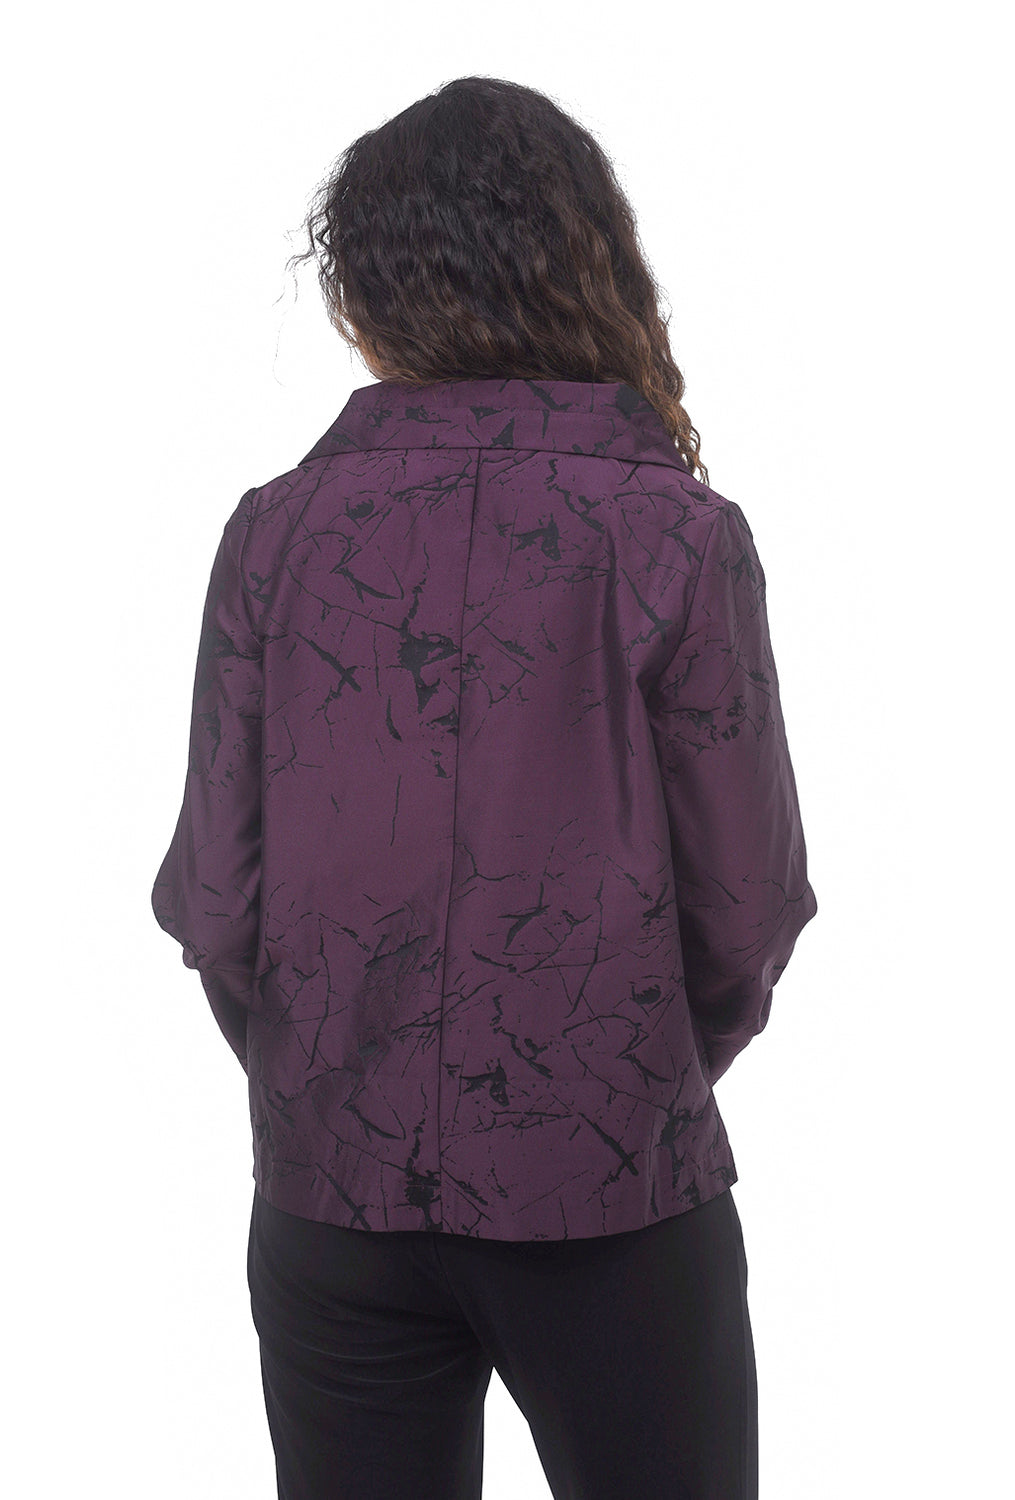 Liv by Habitat Print Suzanne Jacket, Mulberry